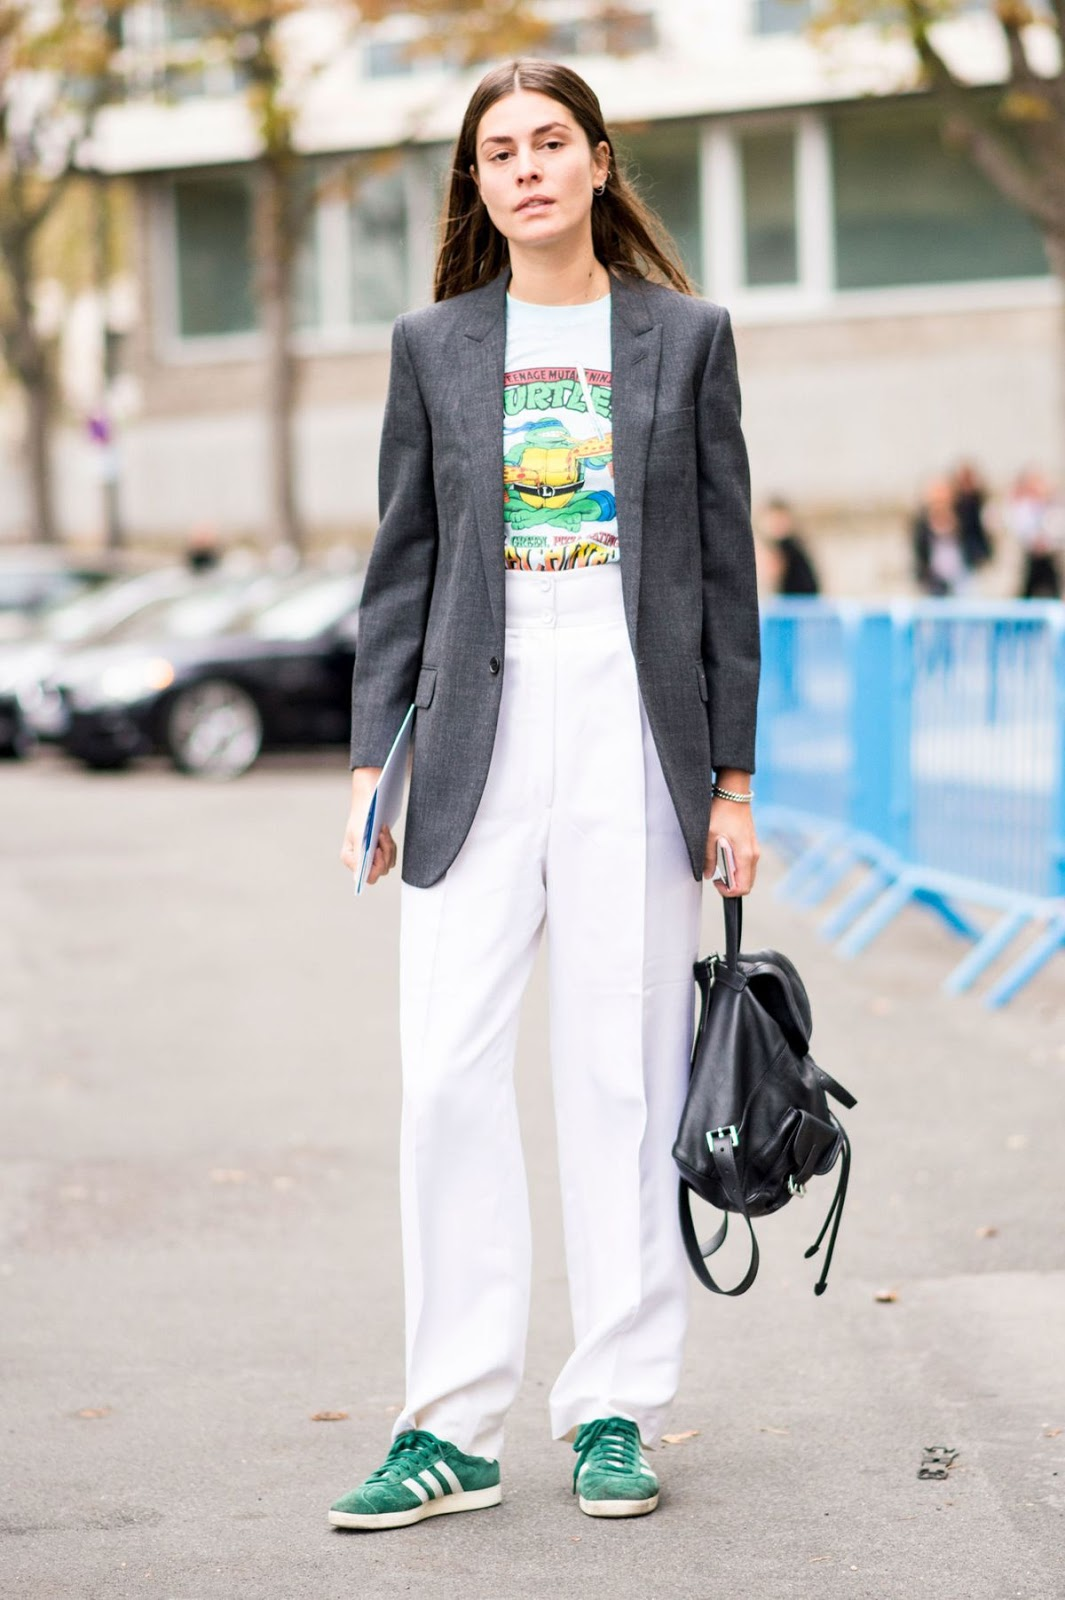 Cool Spring Street Style Outfit — Grey Blazer, Graphic T-Shirt, White Pants, Black Backpack, and Green Adidas Sneakers